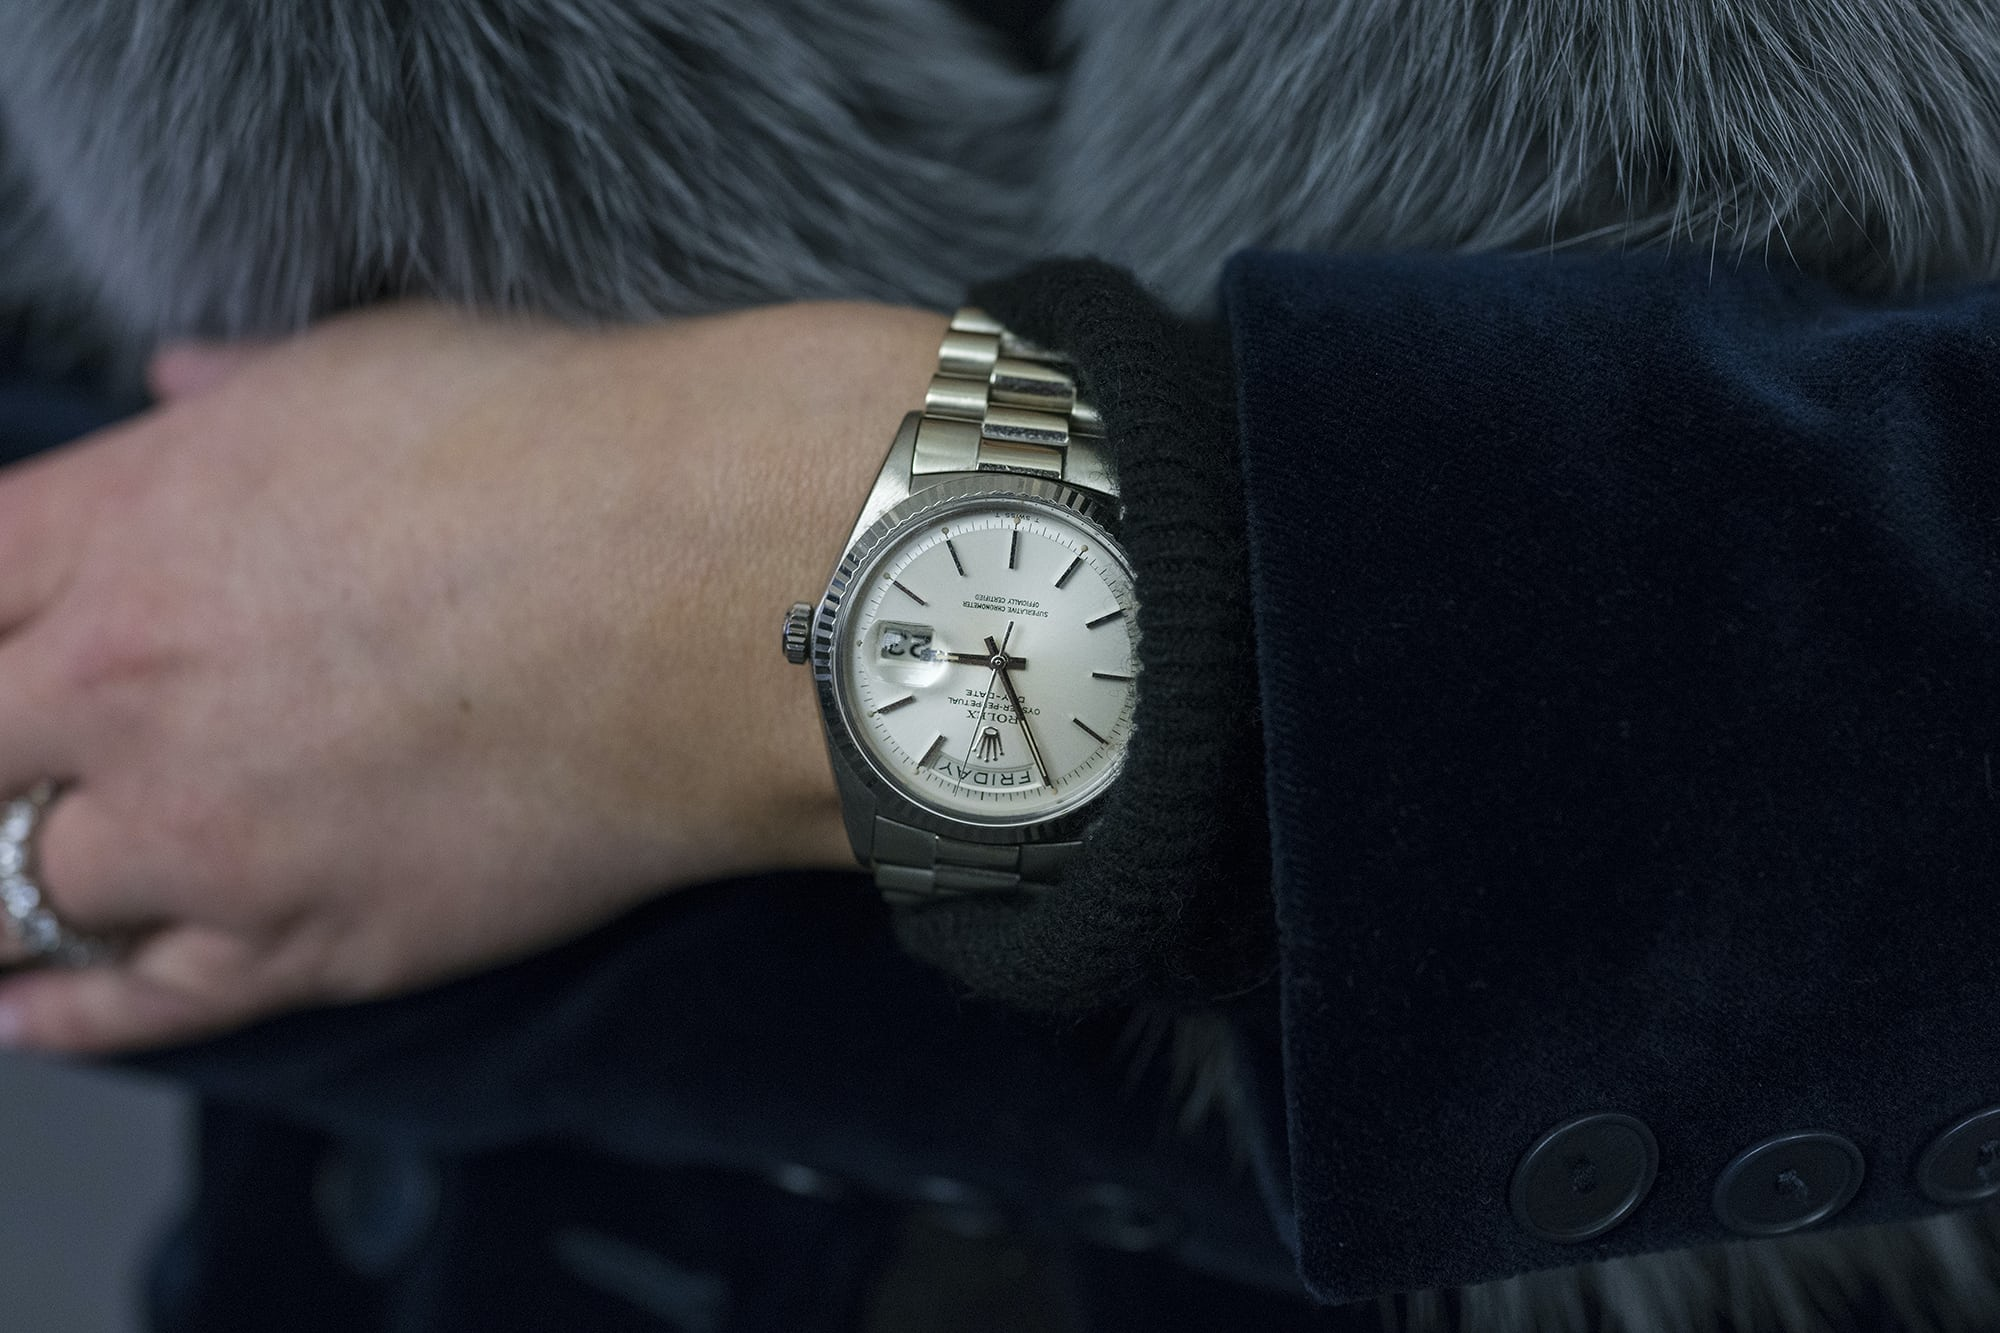 Photo Report: The Fashion And Watches Of Baselworld 2018 Photo Report: The Fashion And Watches Of Baselworld 2018 DSC00721 copy